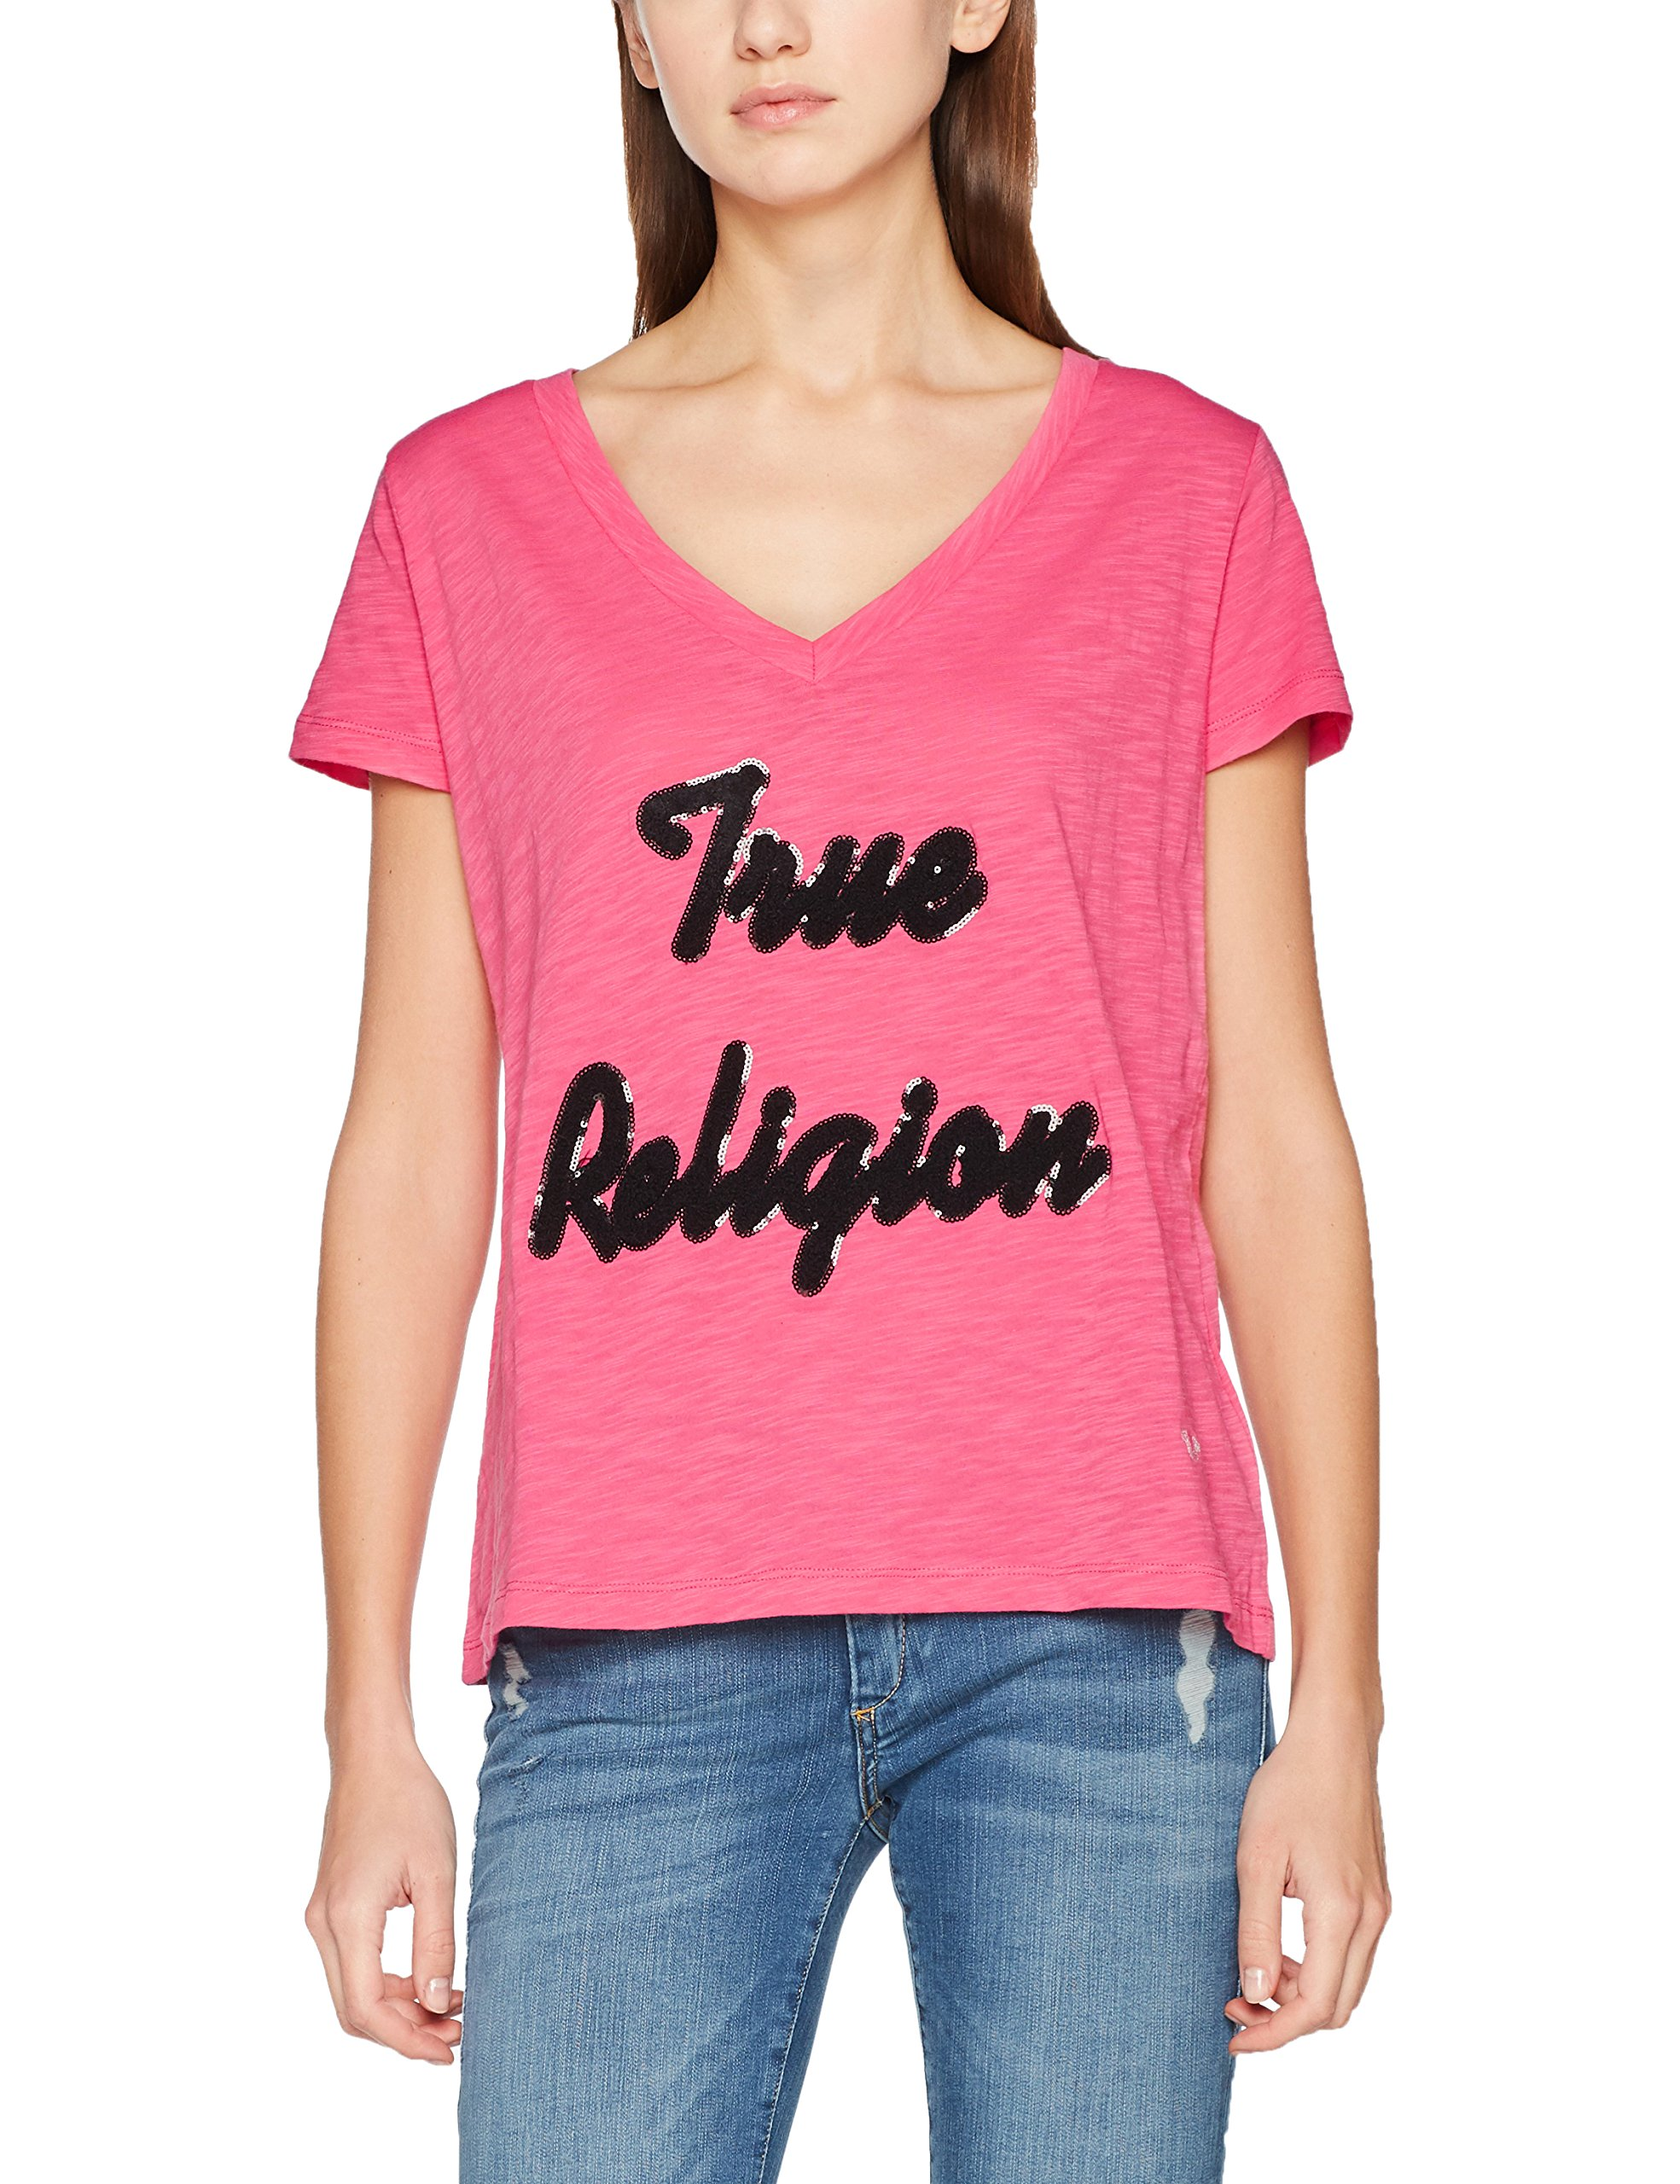 685840taille l shirt 1 PinkT Femme True Religion Rosepink Fabricant ONP0wkn8X